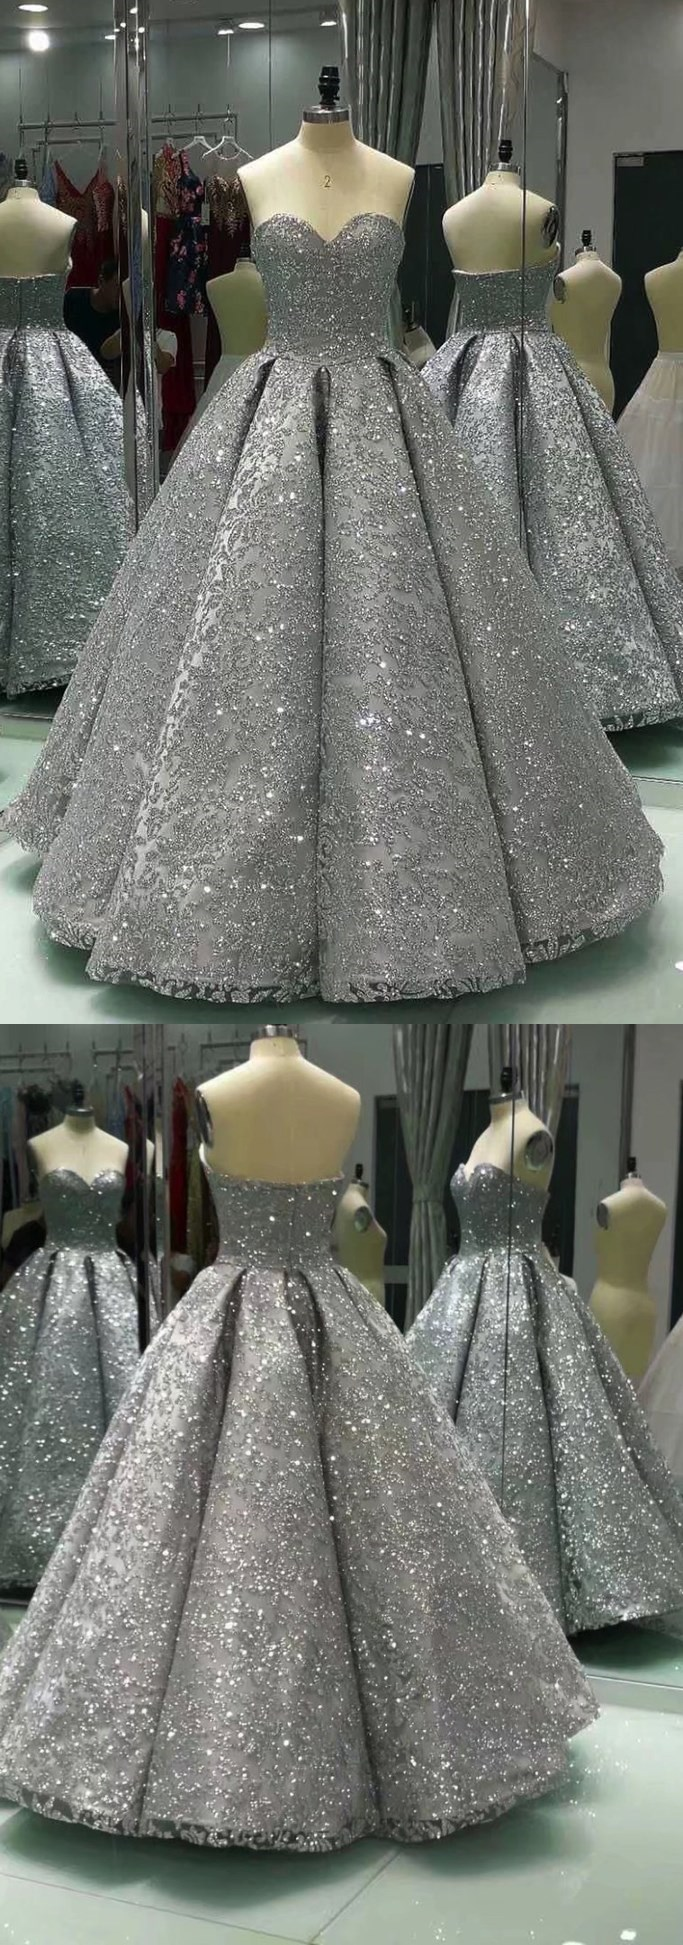 Sweetheart gray sleeveless long sequins ball gown, shiny winter formal prom dresses